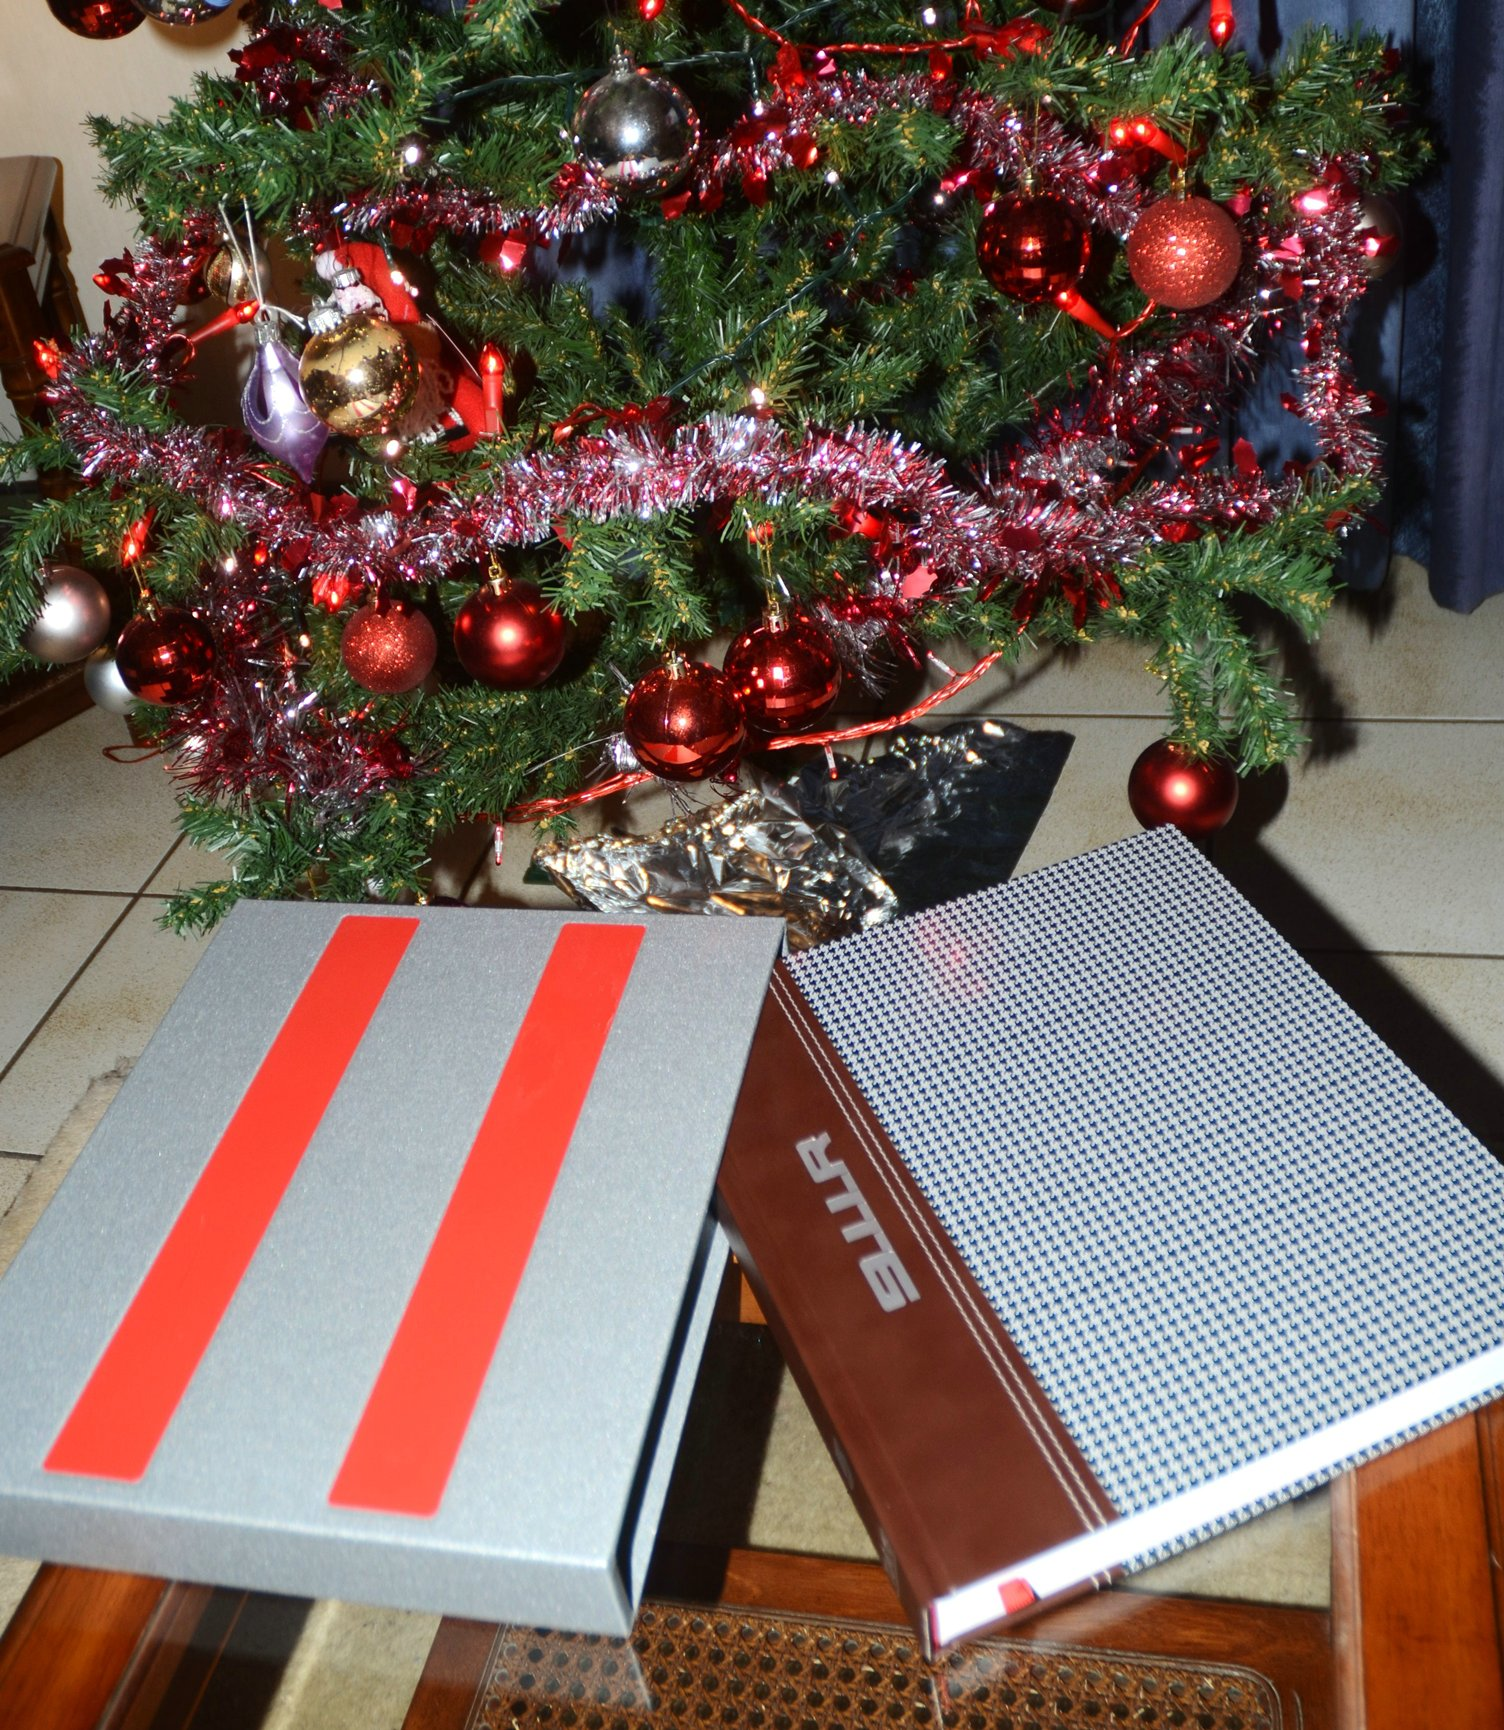 911 R , The Book , The ultimate Christmas present  ! (TAG Motorbooks)